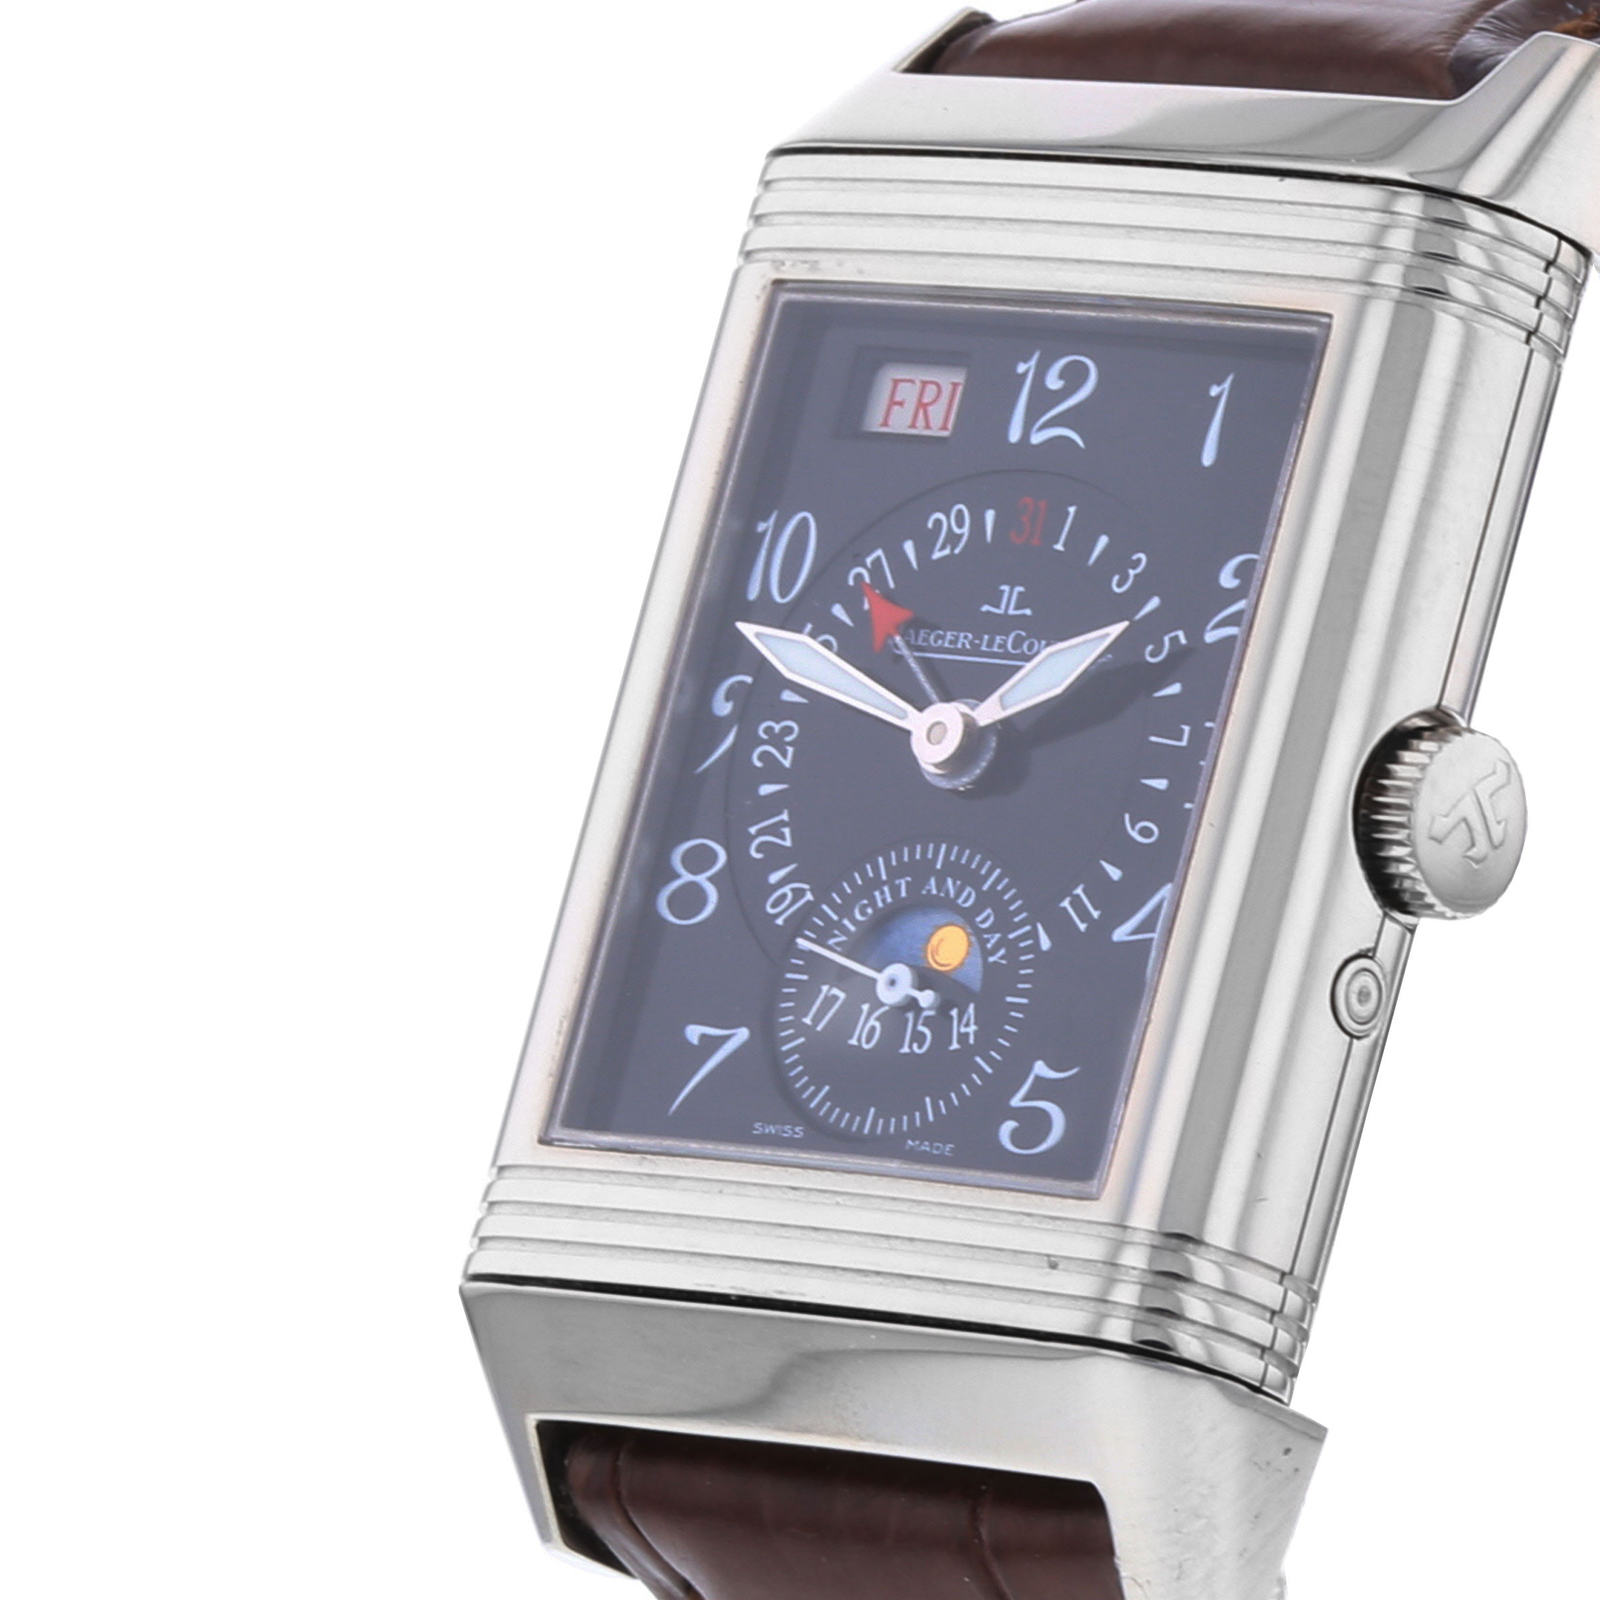 Pre-Owned Jaeger LeCoultre Mens Watch, Circa 2016